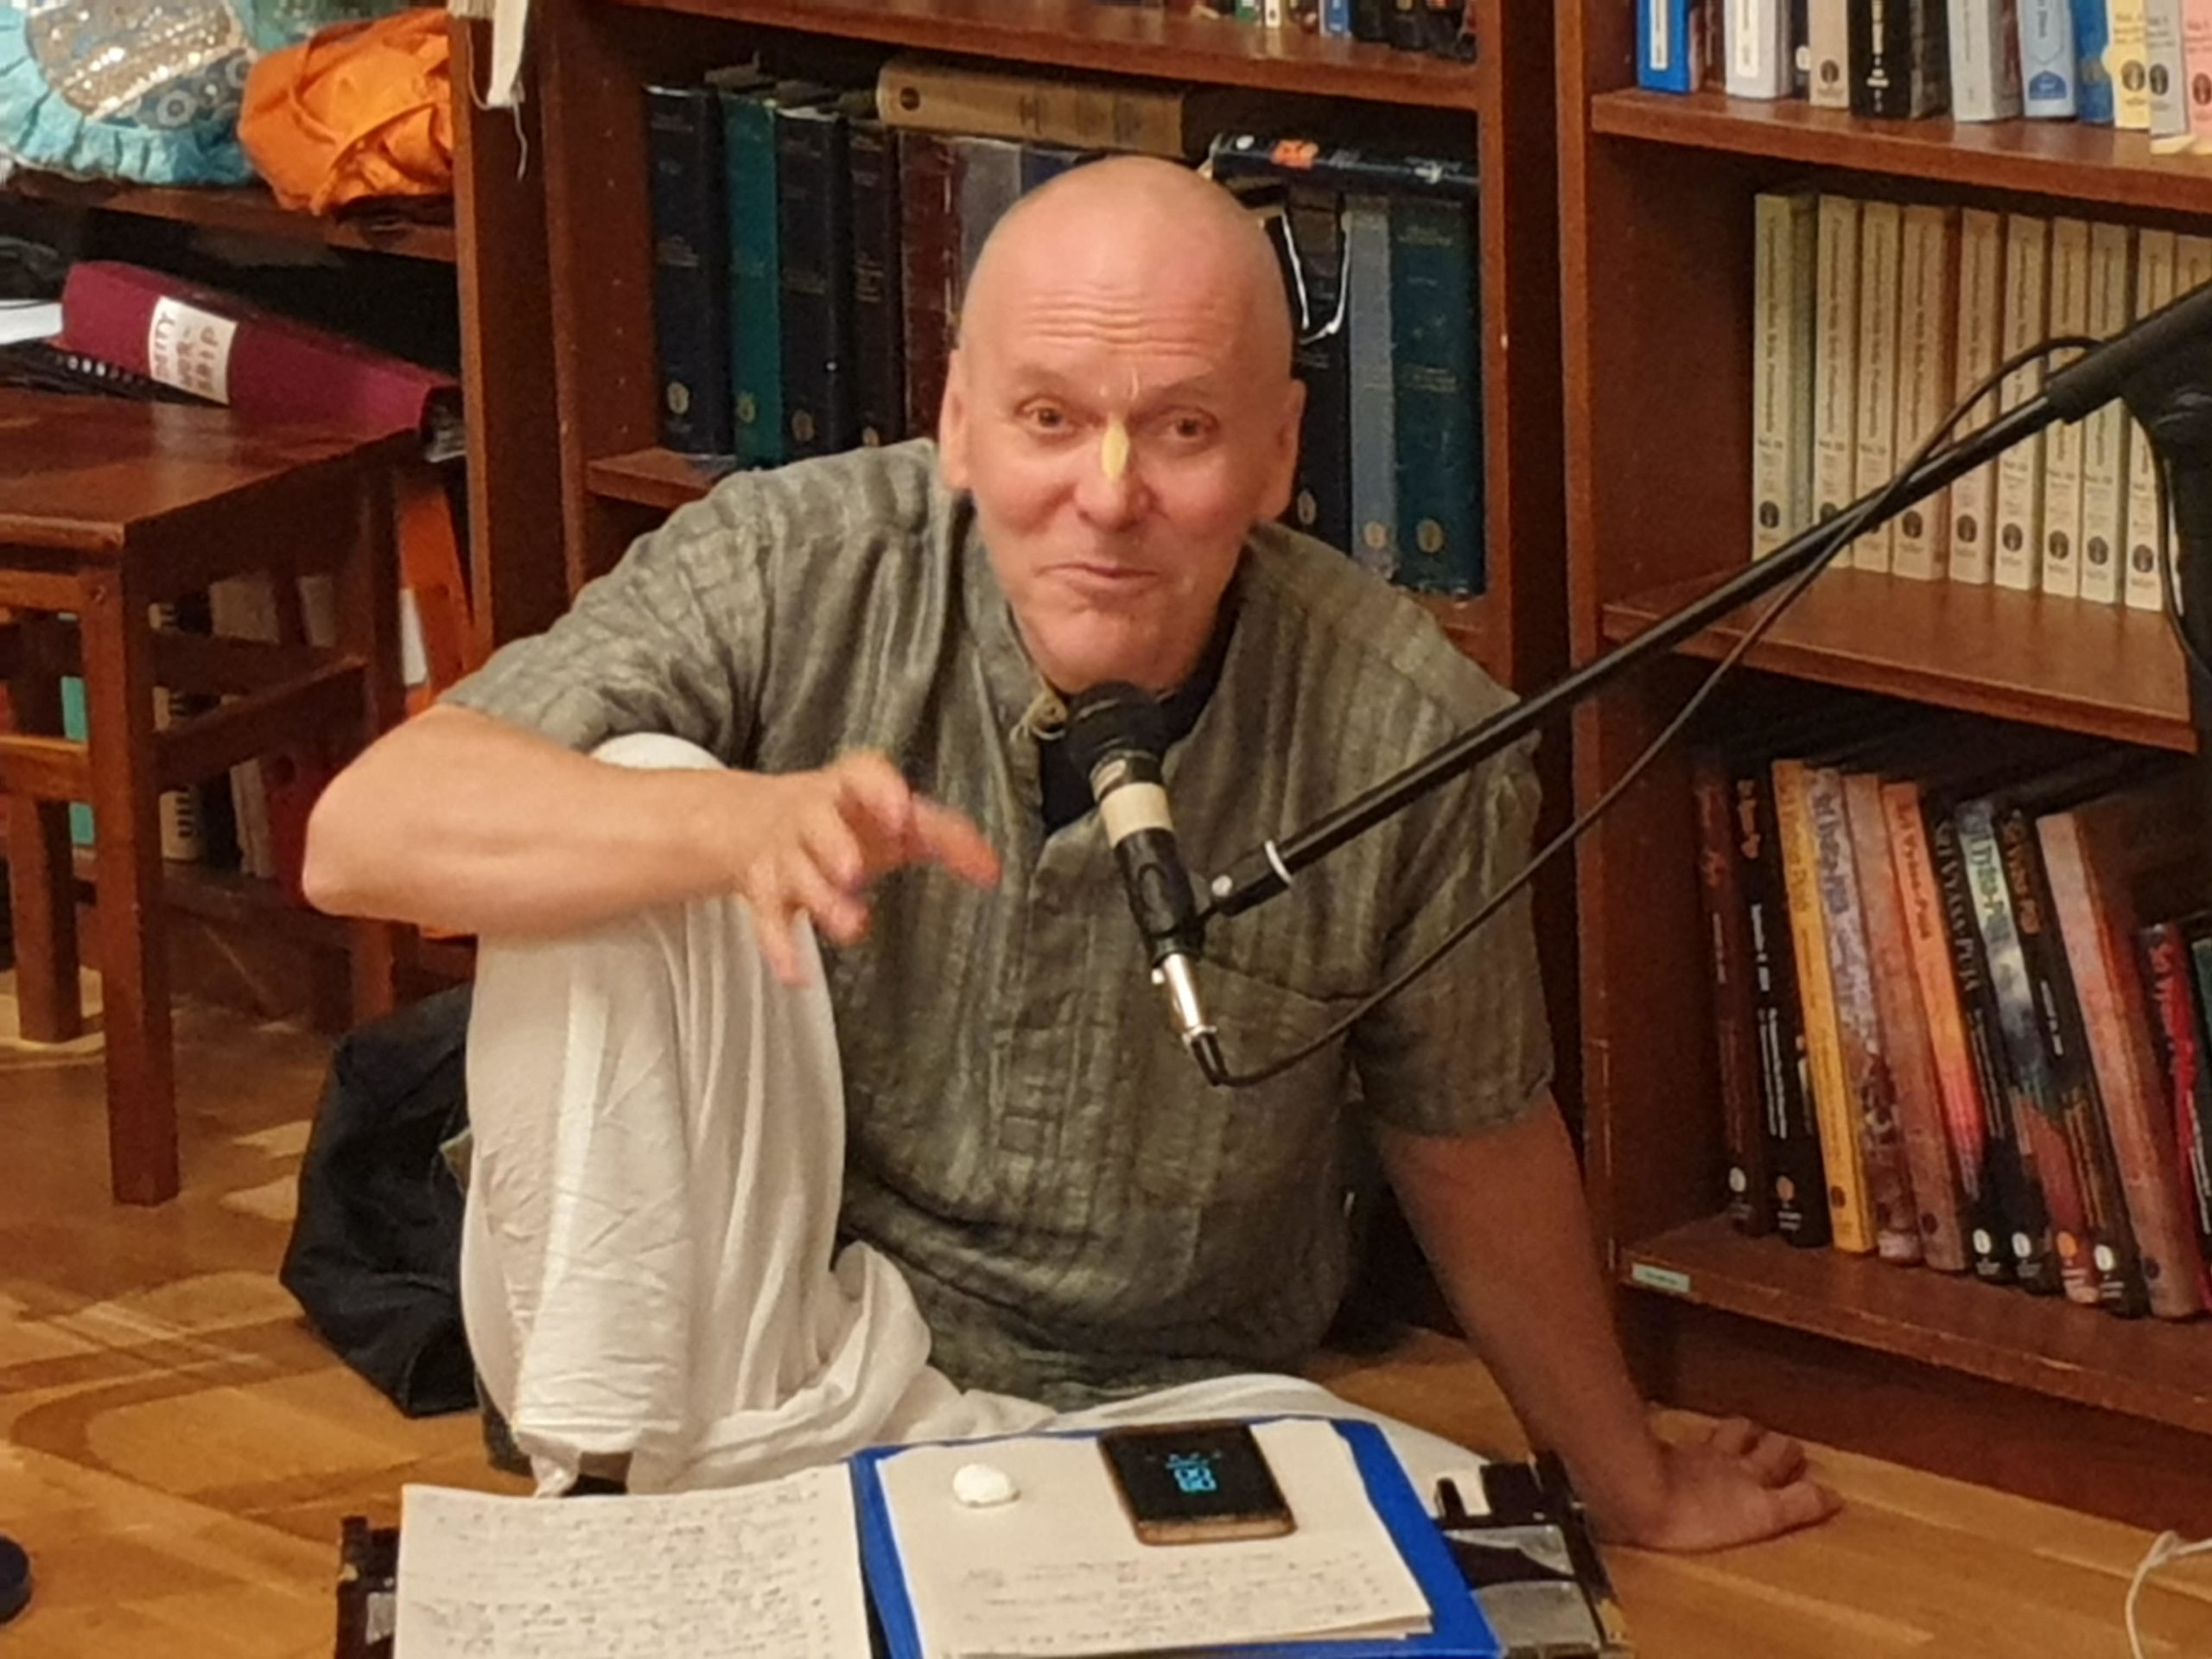 Tapas Das: On Discovering Bhagavad Gita, Dealing Positively with Existential Crisis, and 'Coming Home'